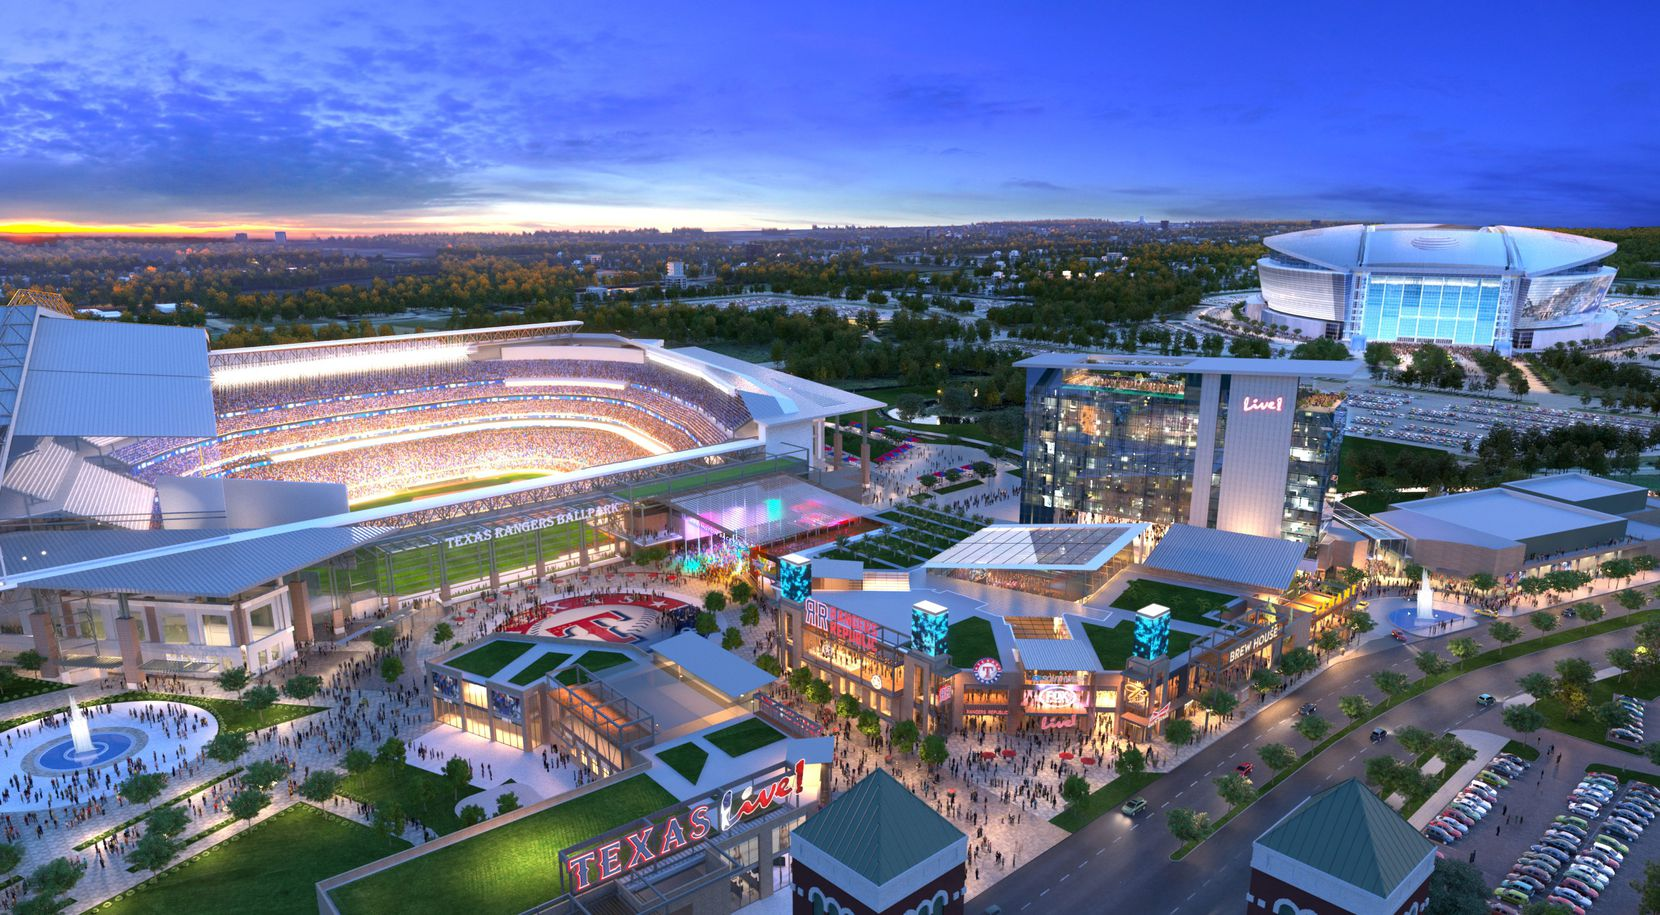 Artist rendering of Texas Live! entertainment complex, which will be next door to the new Texas Ranger stadium. Arlington voters approved public funding for the stadium Tuesday.